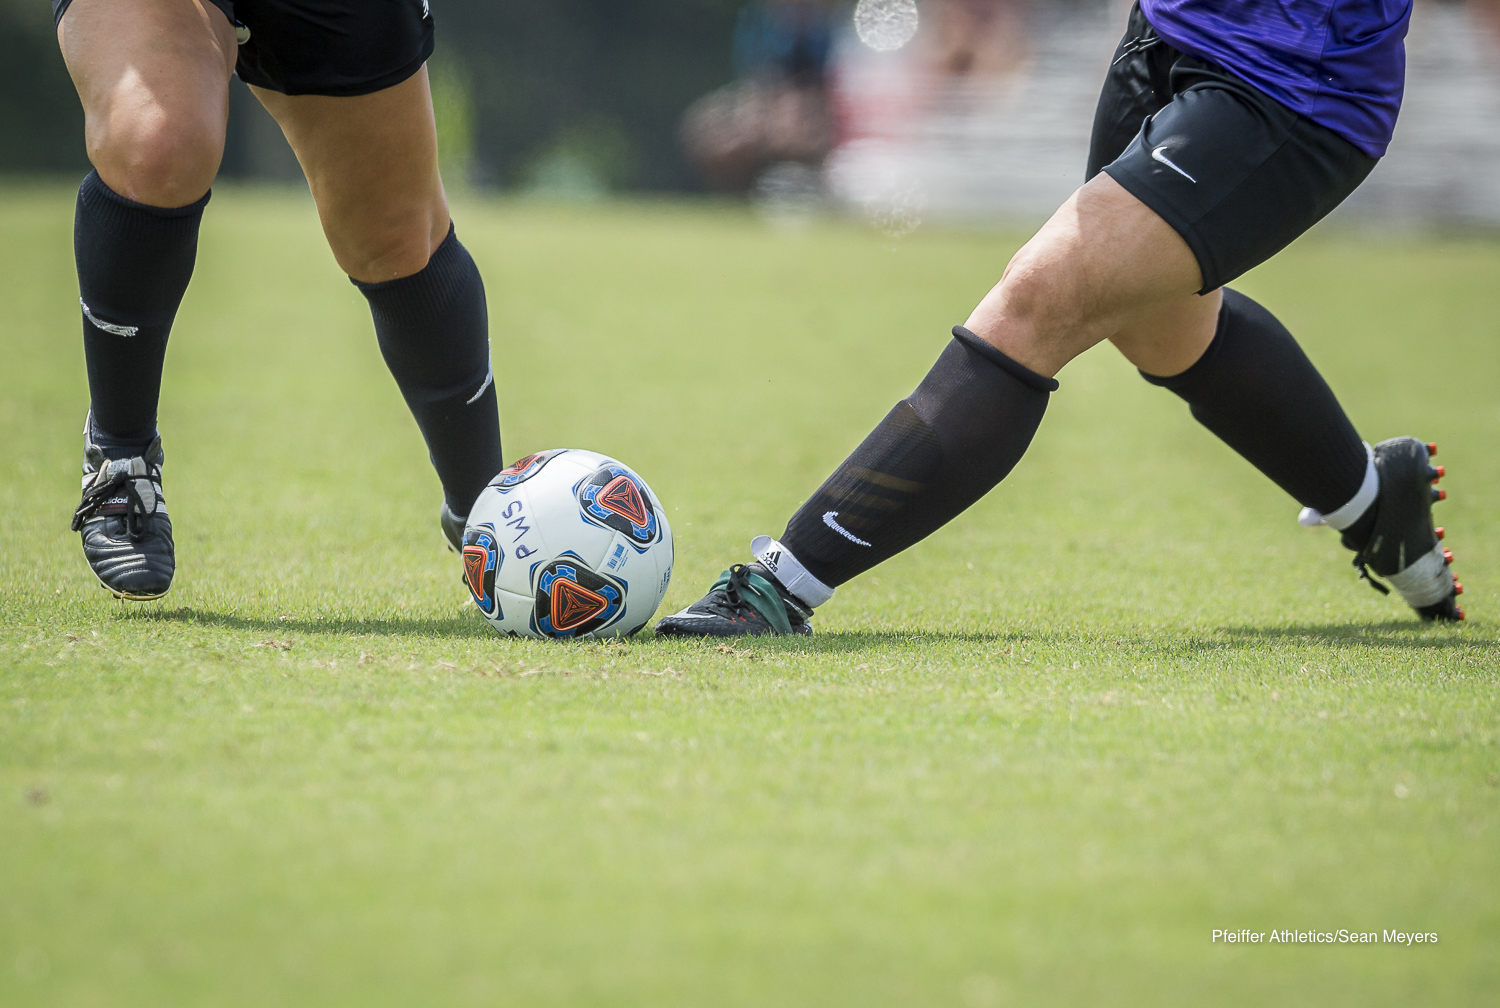 Metzger's Strike Gives Pfeiffer Women's Soccer Team a 1-0 Win Over Piedmont